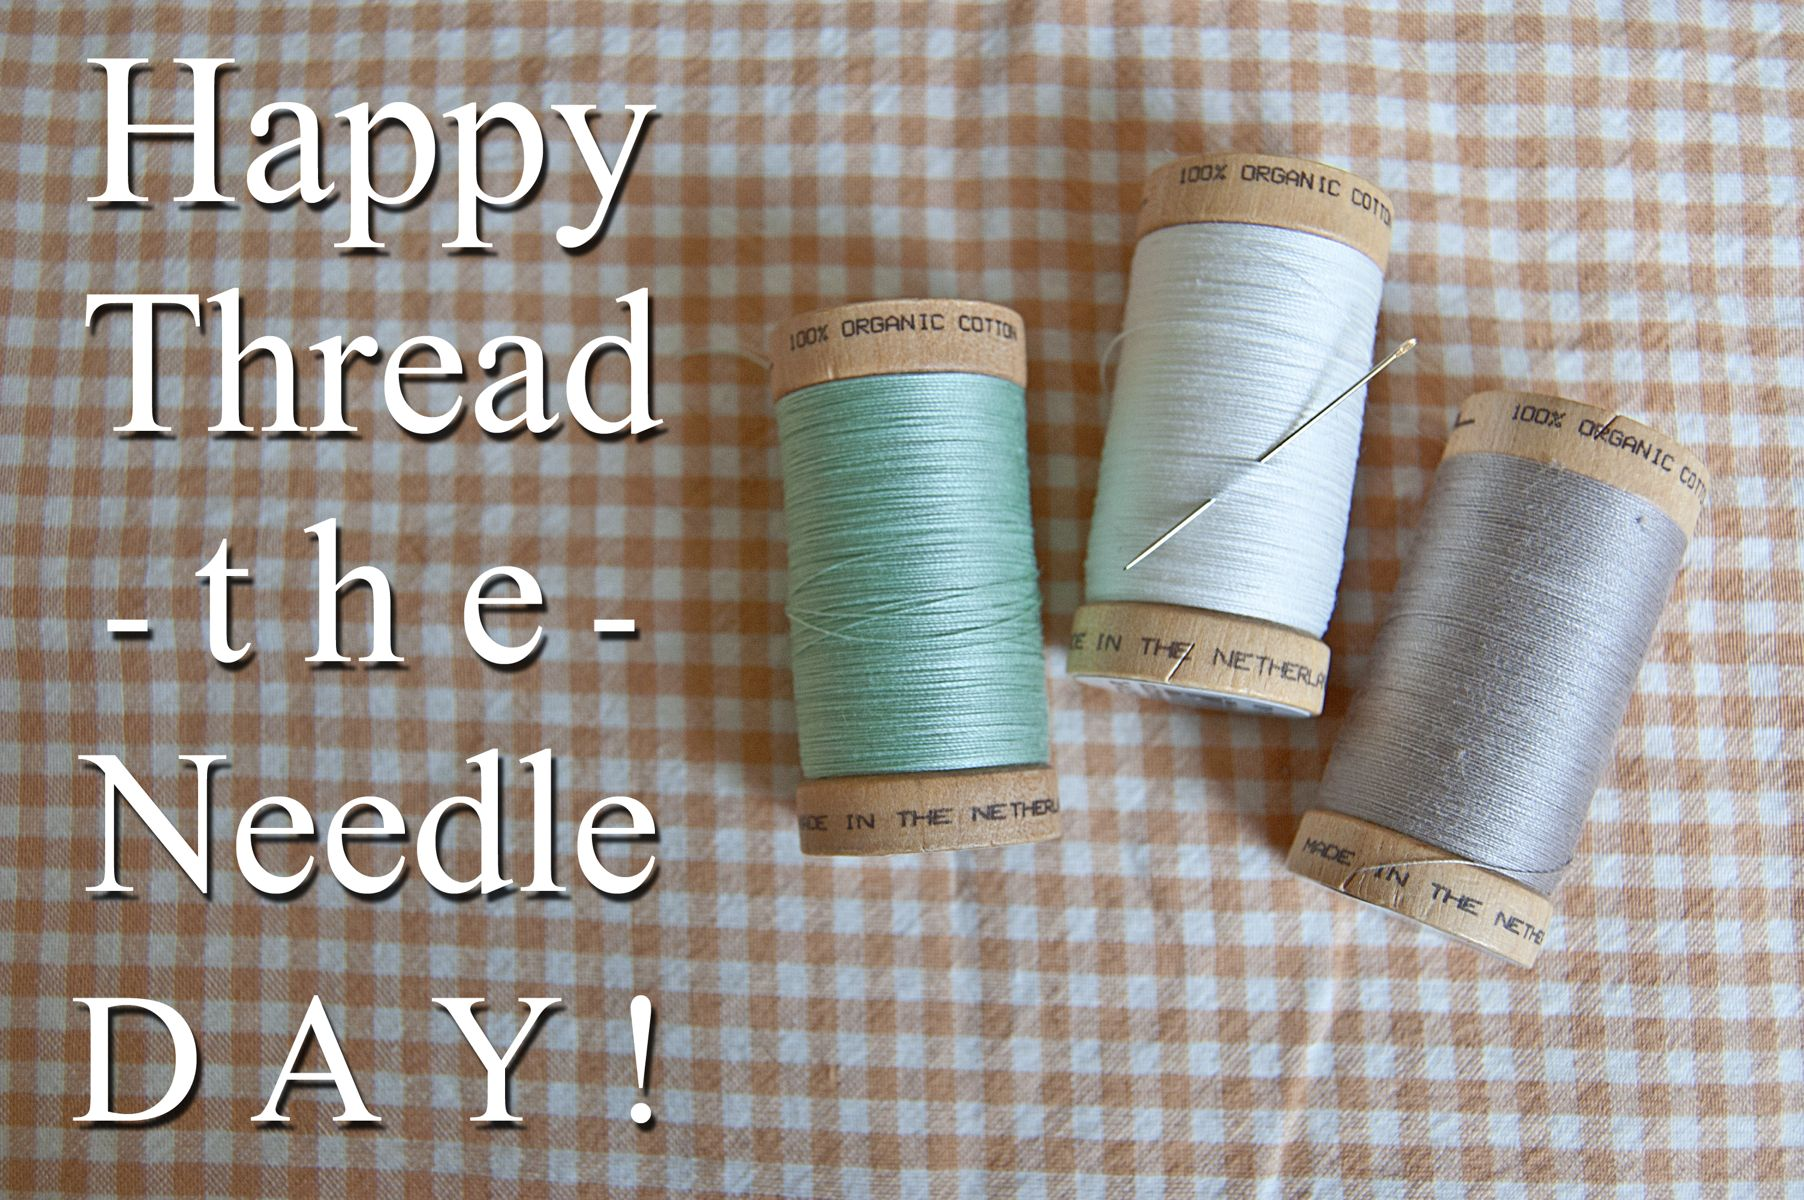 reduce textile waste on thread the needle day